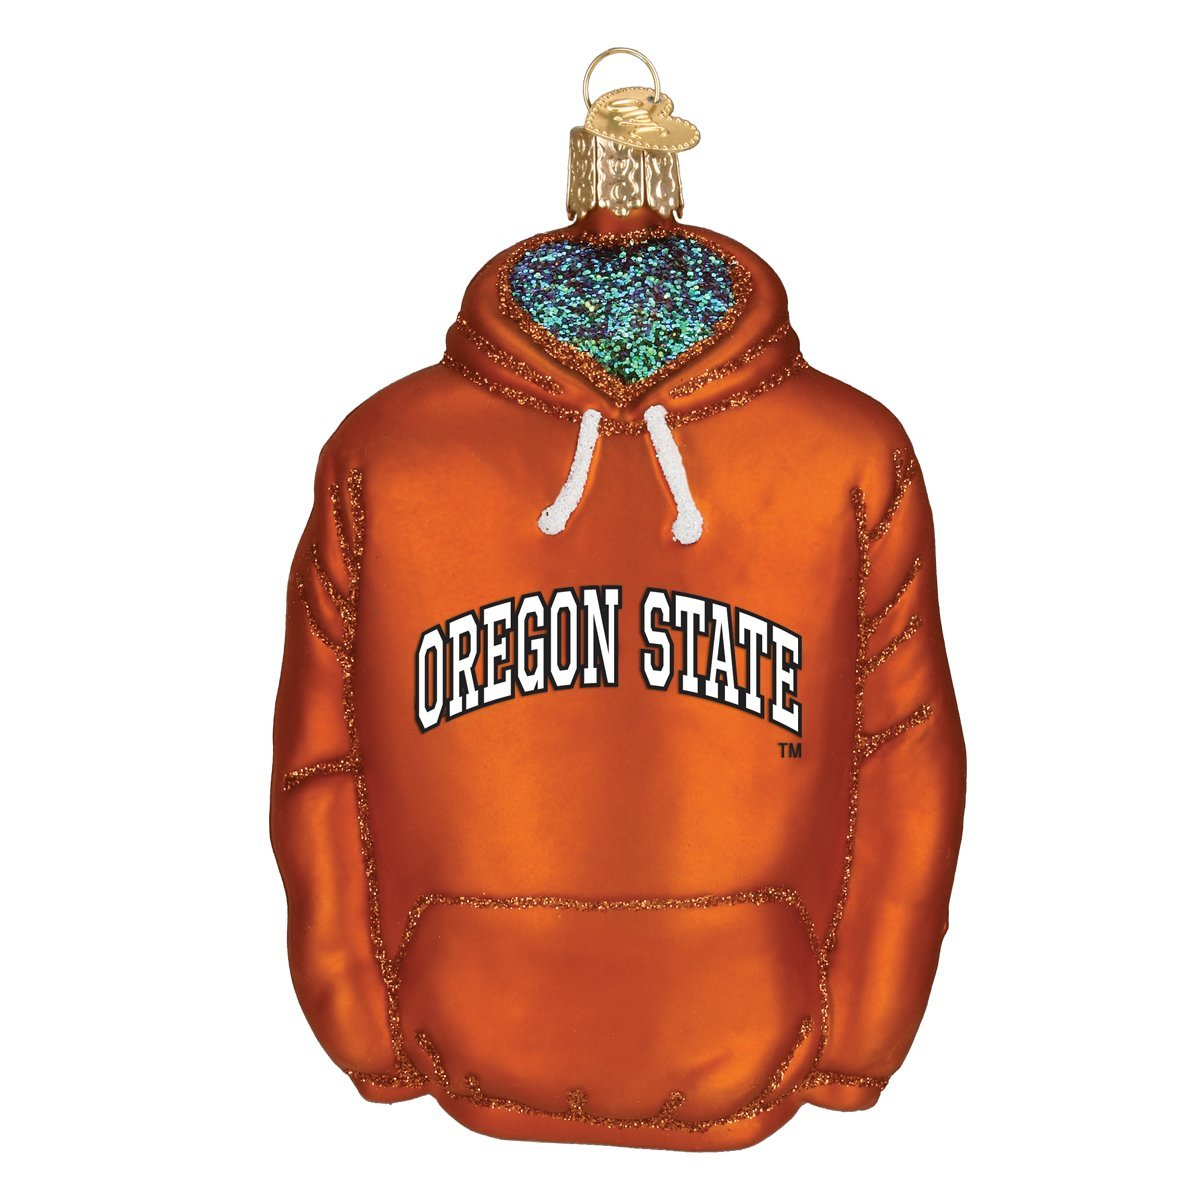 Old World Christmas Ornaments Oregon State Hoodie Glass Blown Ornaments for Christmas Tree